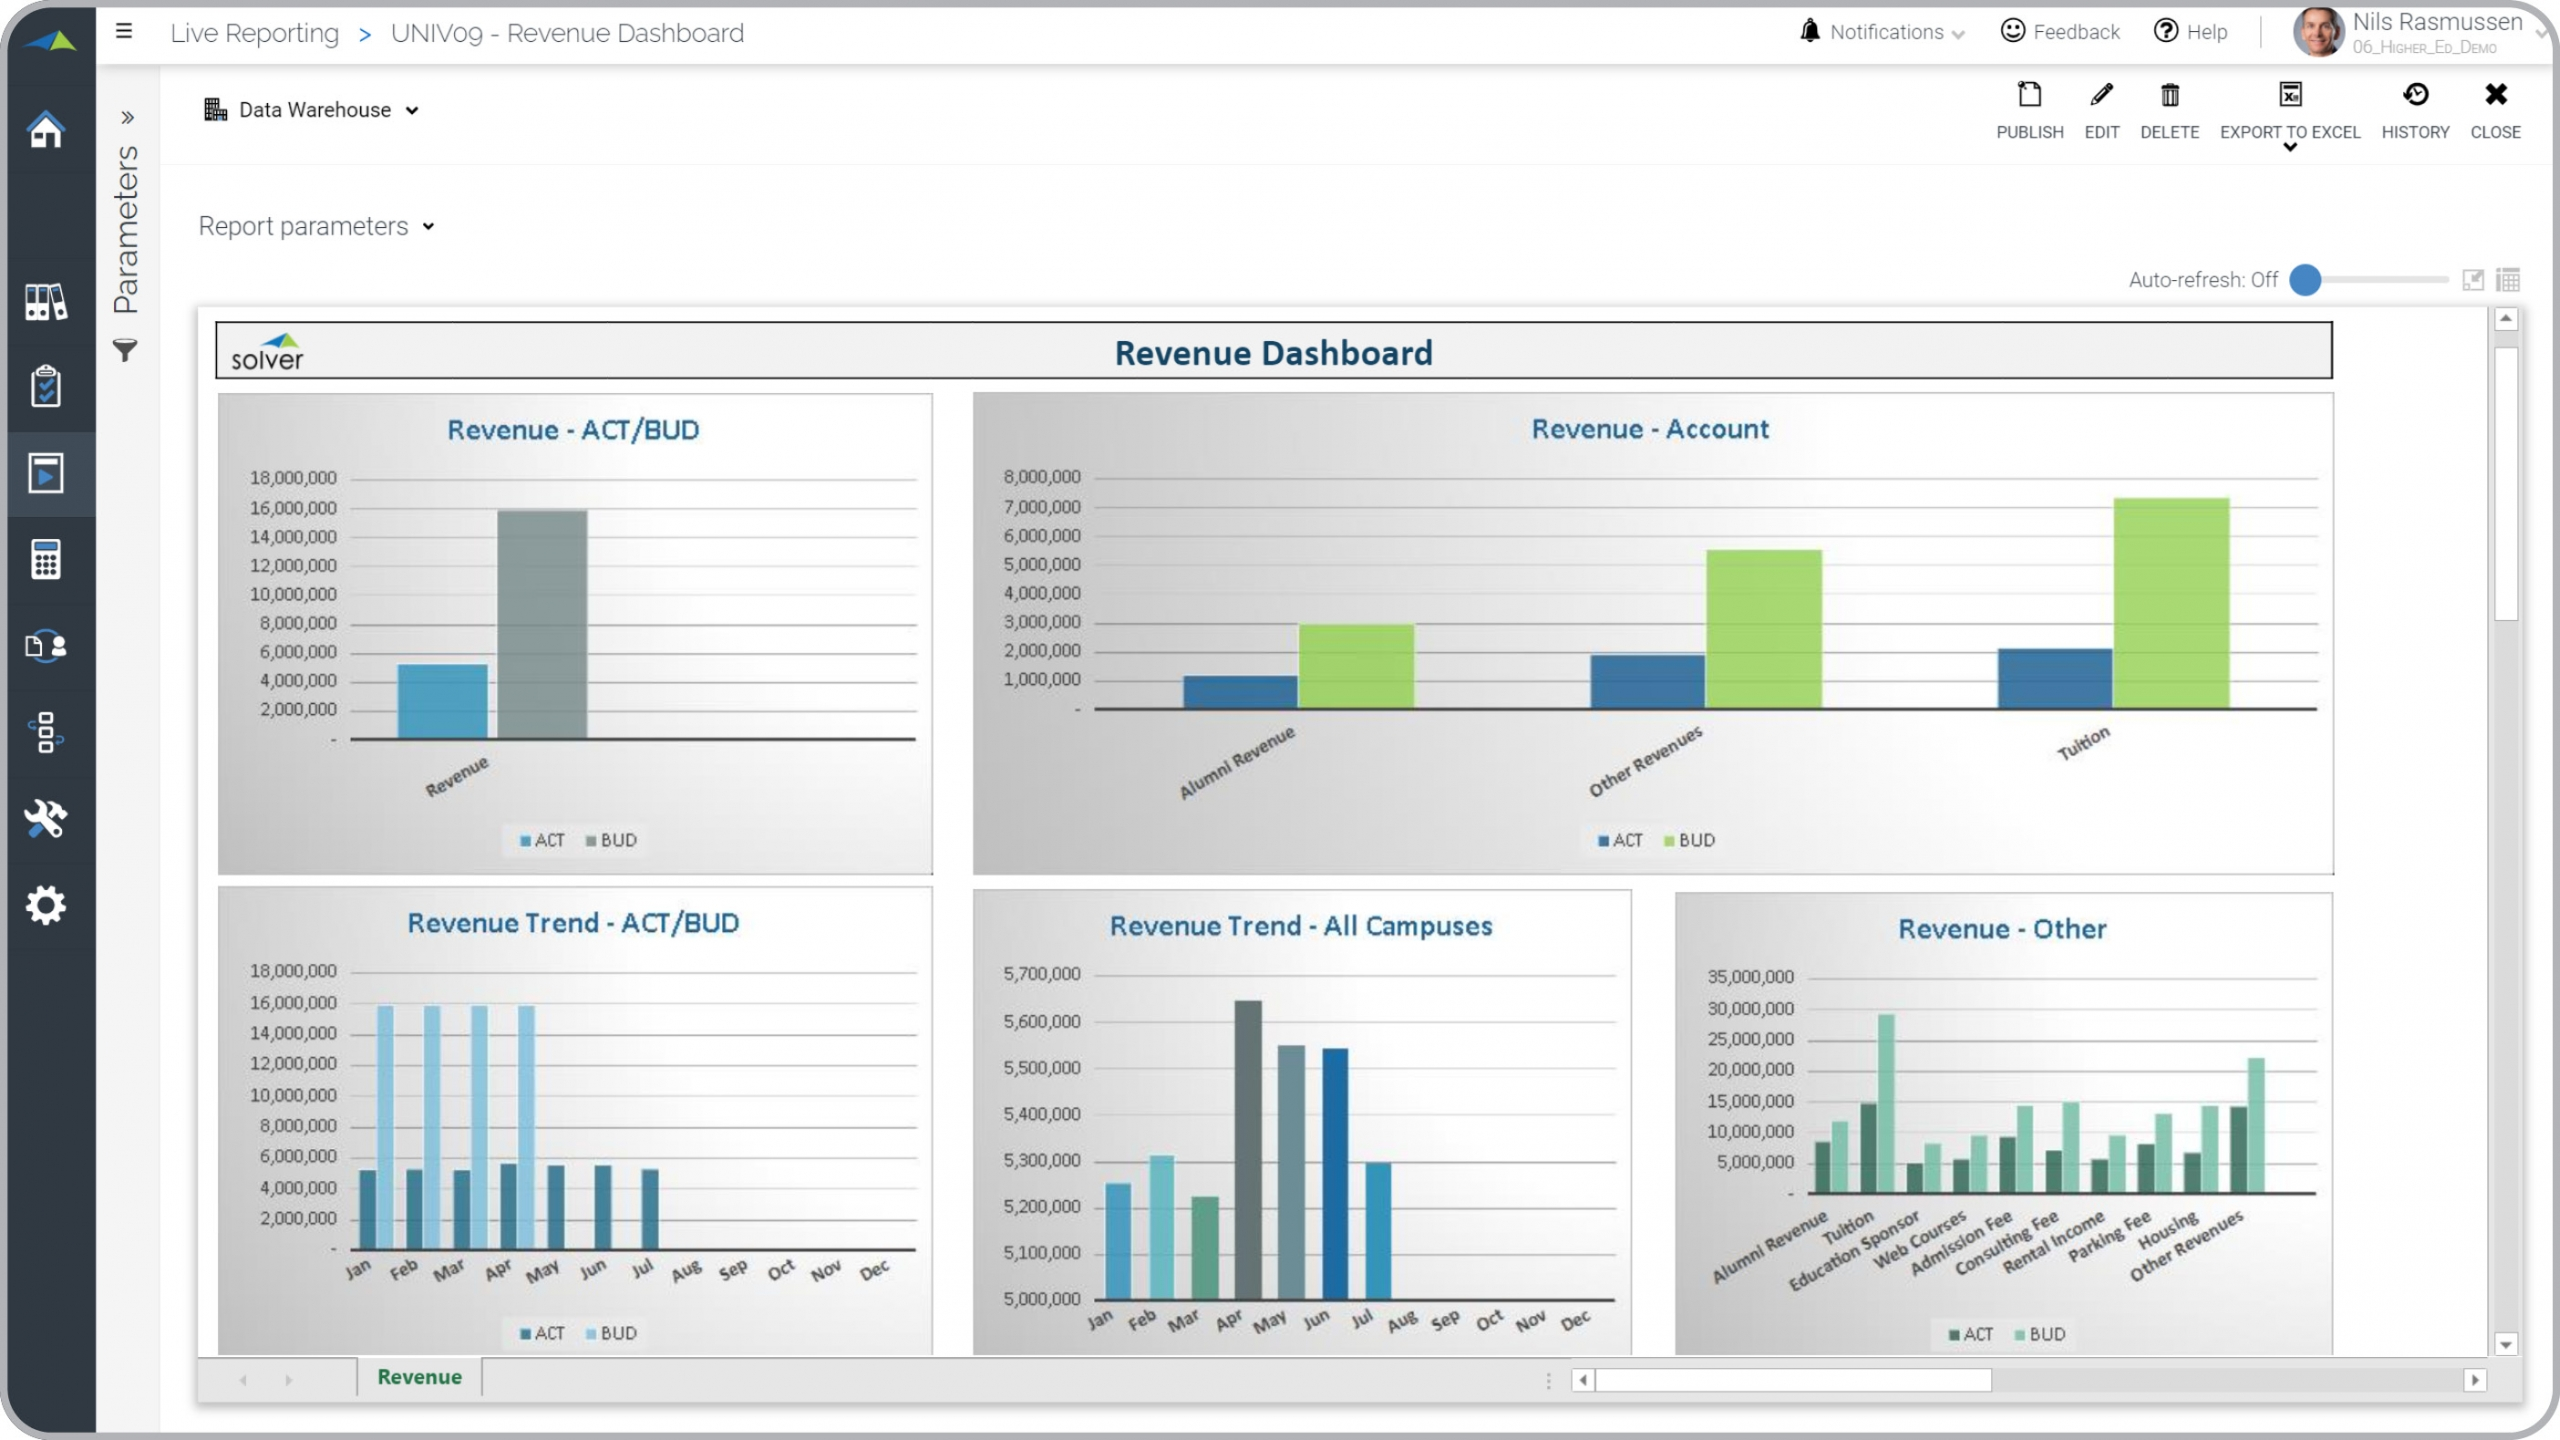 Higher Education Revenue Dashboard Example